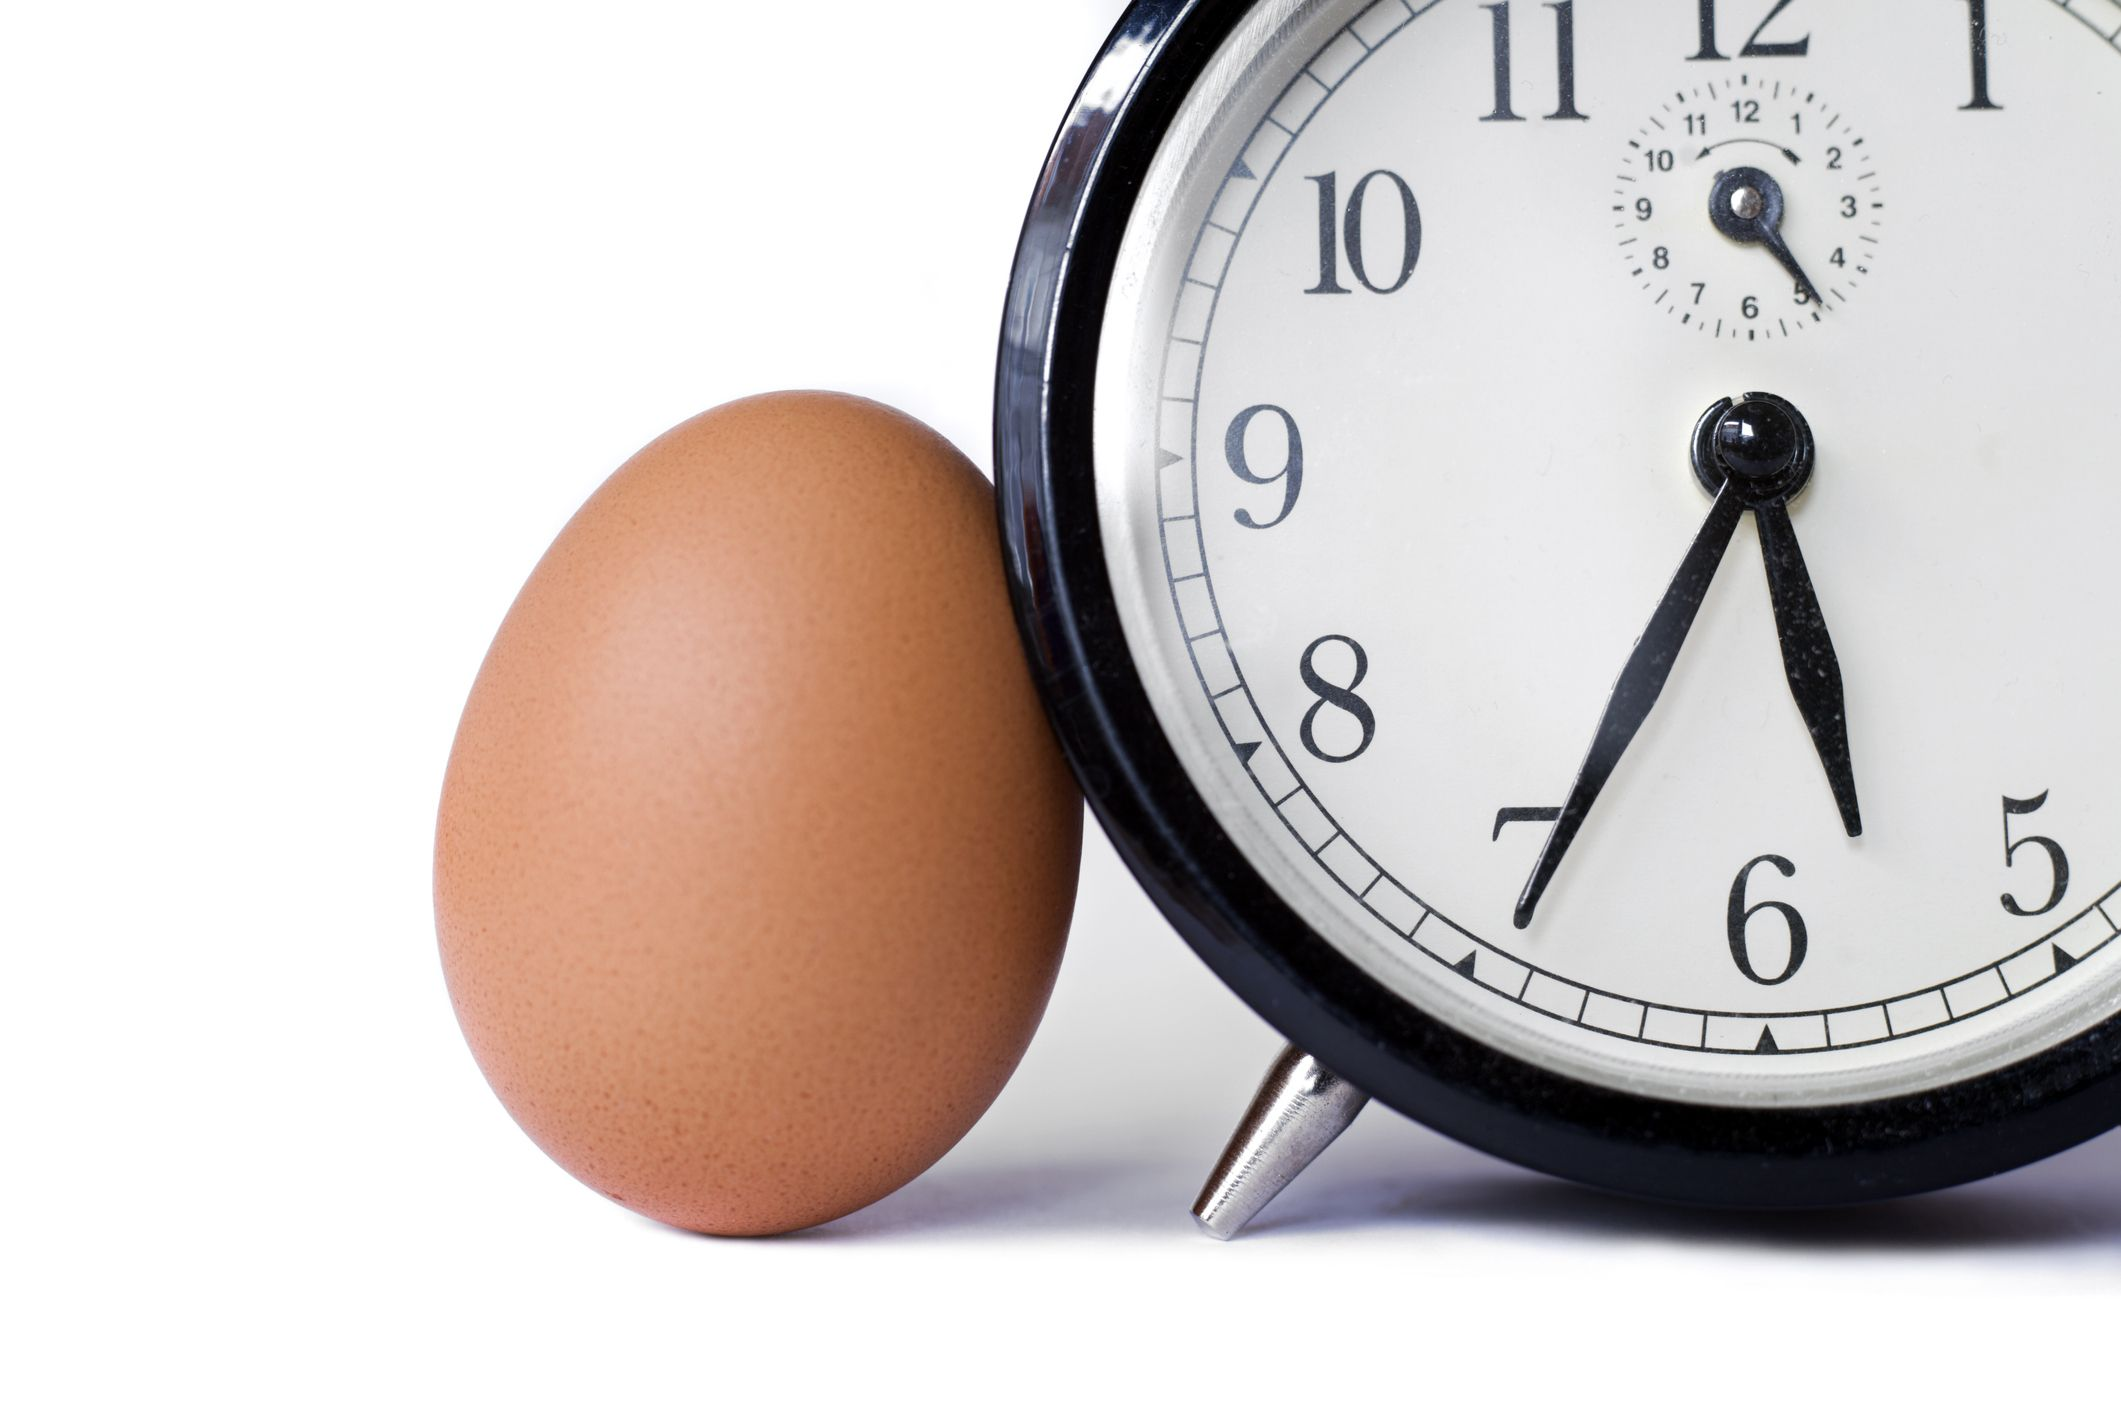 The Easiest Way to Start Fasting Is to Stop Eating Breakfast